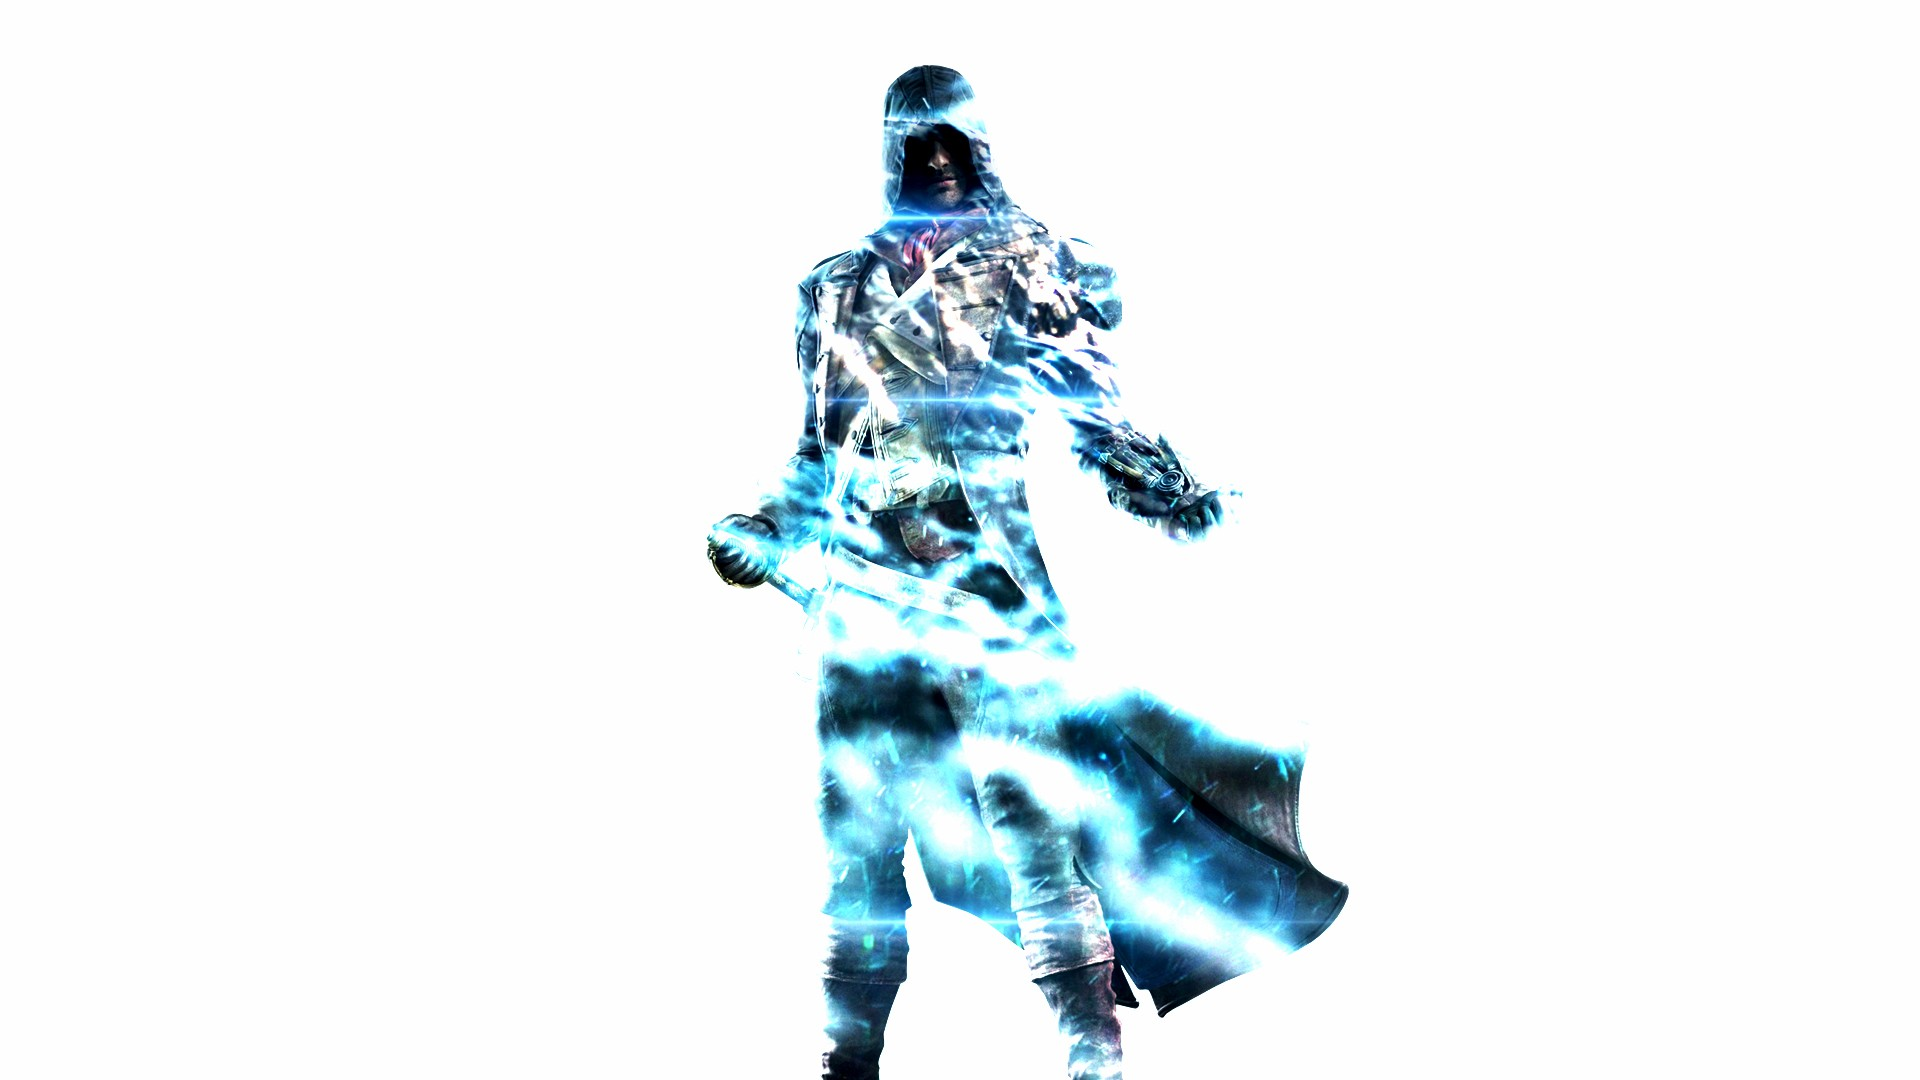 Assassins Creed 3d Wallpaper Unity Assassins Creed Double Exposure Water Flares